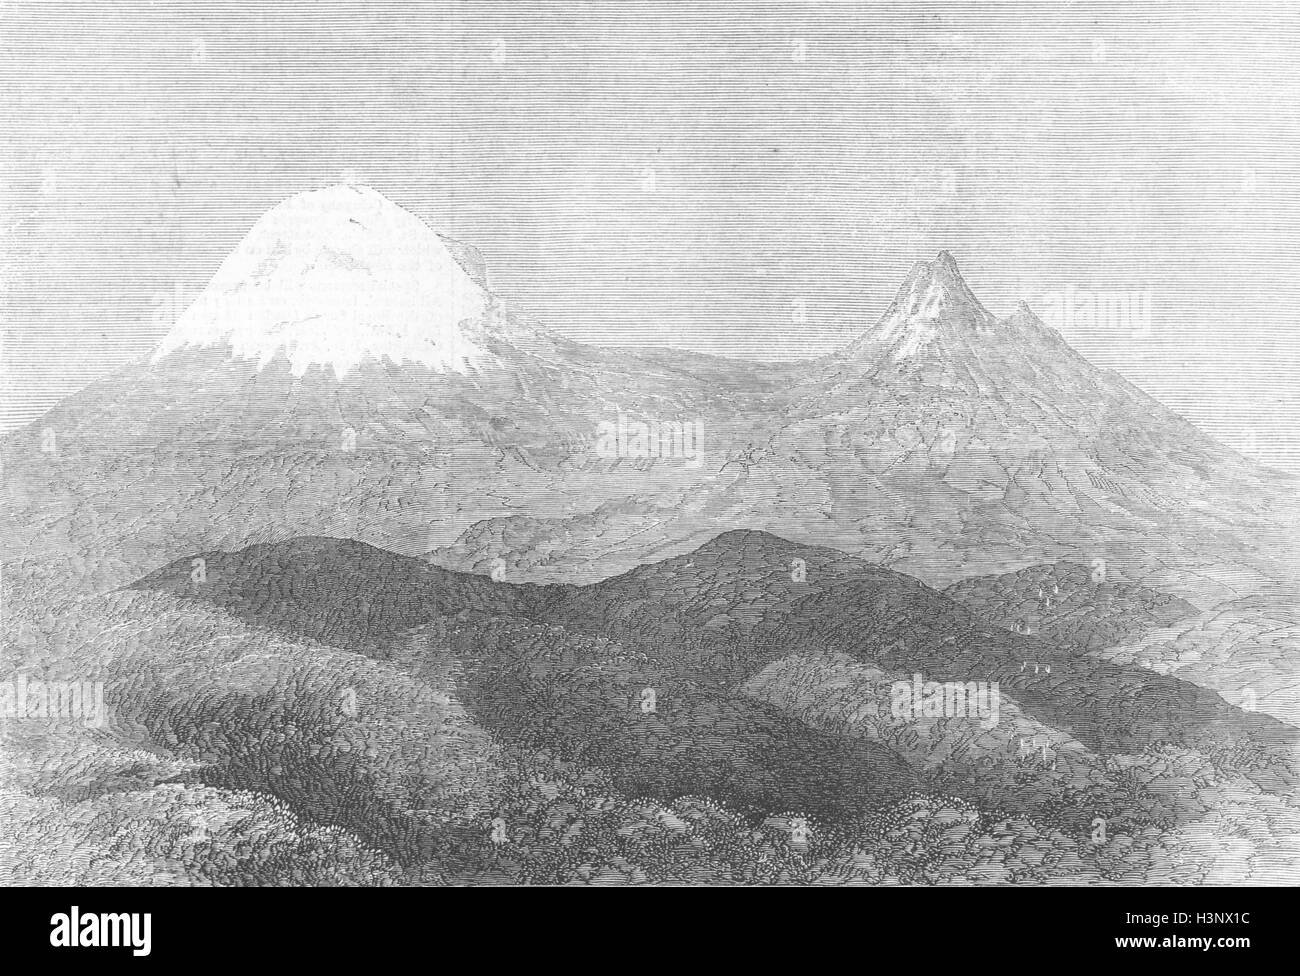 KENYA Peak of Kilimanjaro, snow-clad mountain 1872. Illustrated London News - Stock Image